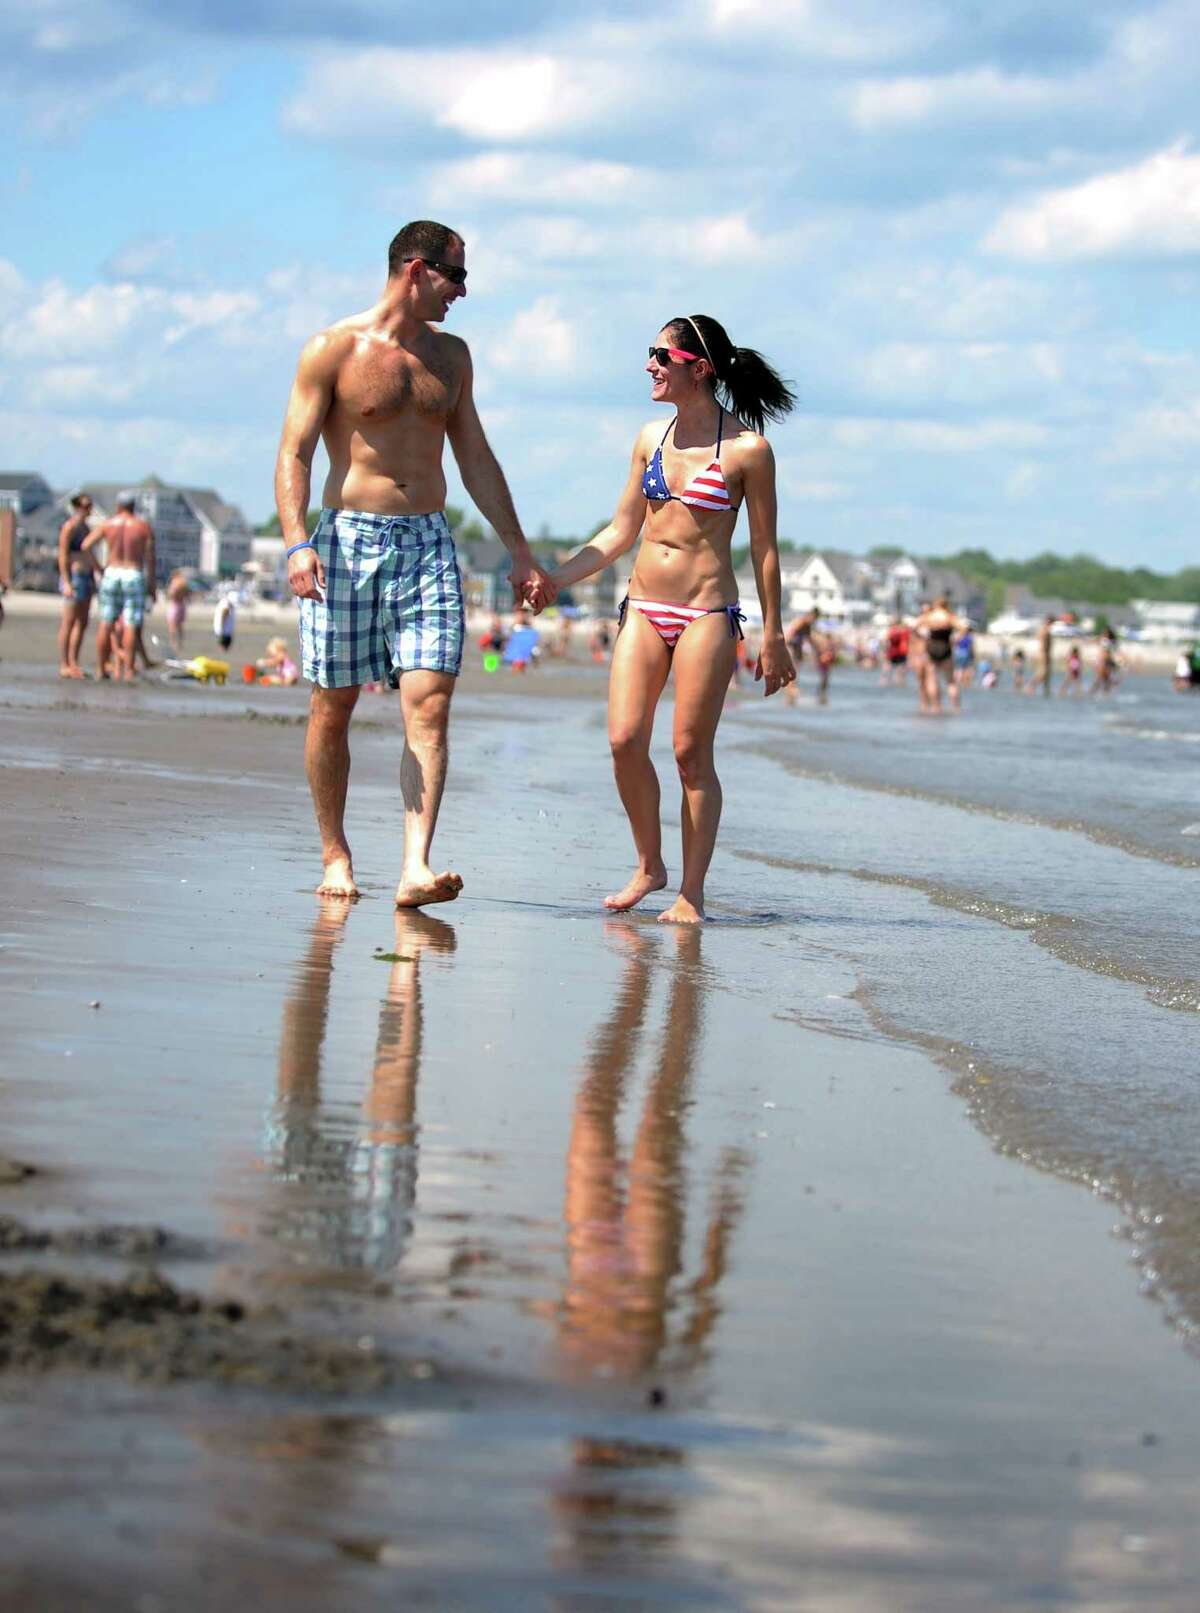 Conditions are right for a great Labor Day weekend. We have a glorious stretch of sunny, warm weather in the forecast; gas prices are the cheapest in 10 years; even the state's unemployment rate of 5.4 percent is the lowest since May 2008. Here's what you need to know to get the most out of the three-day weekend.